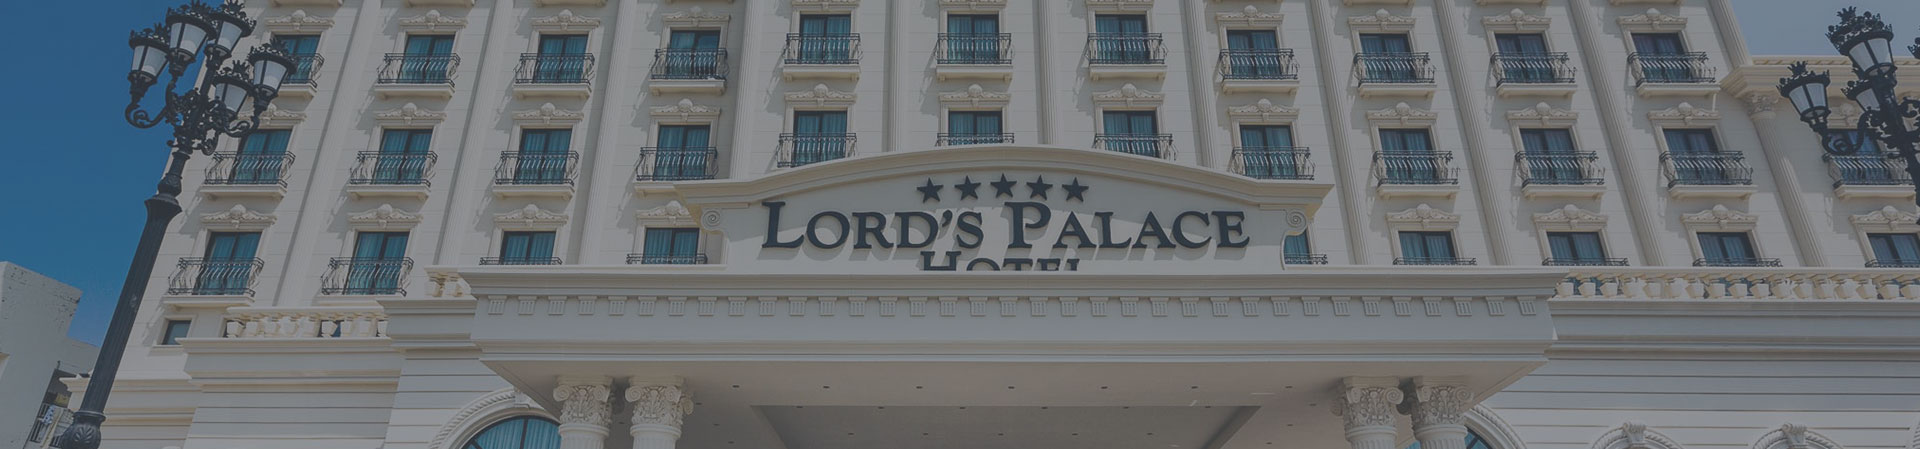 Lord's Palace Hotel & Spa & Casino